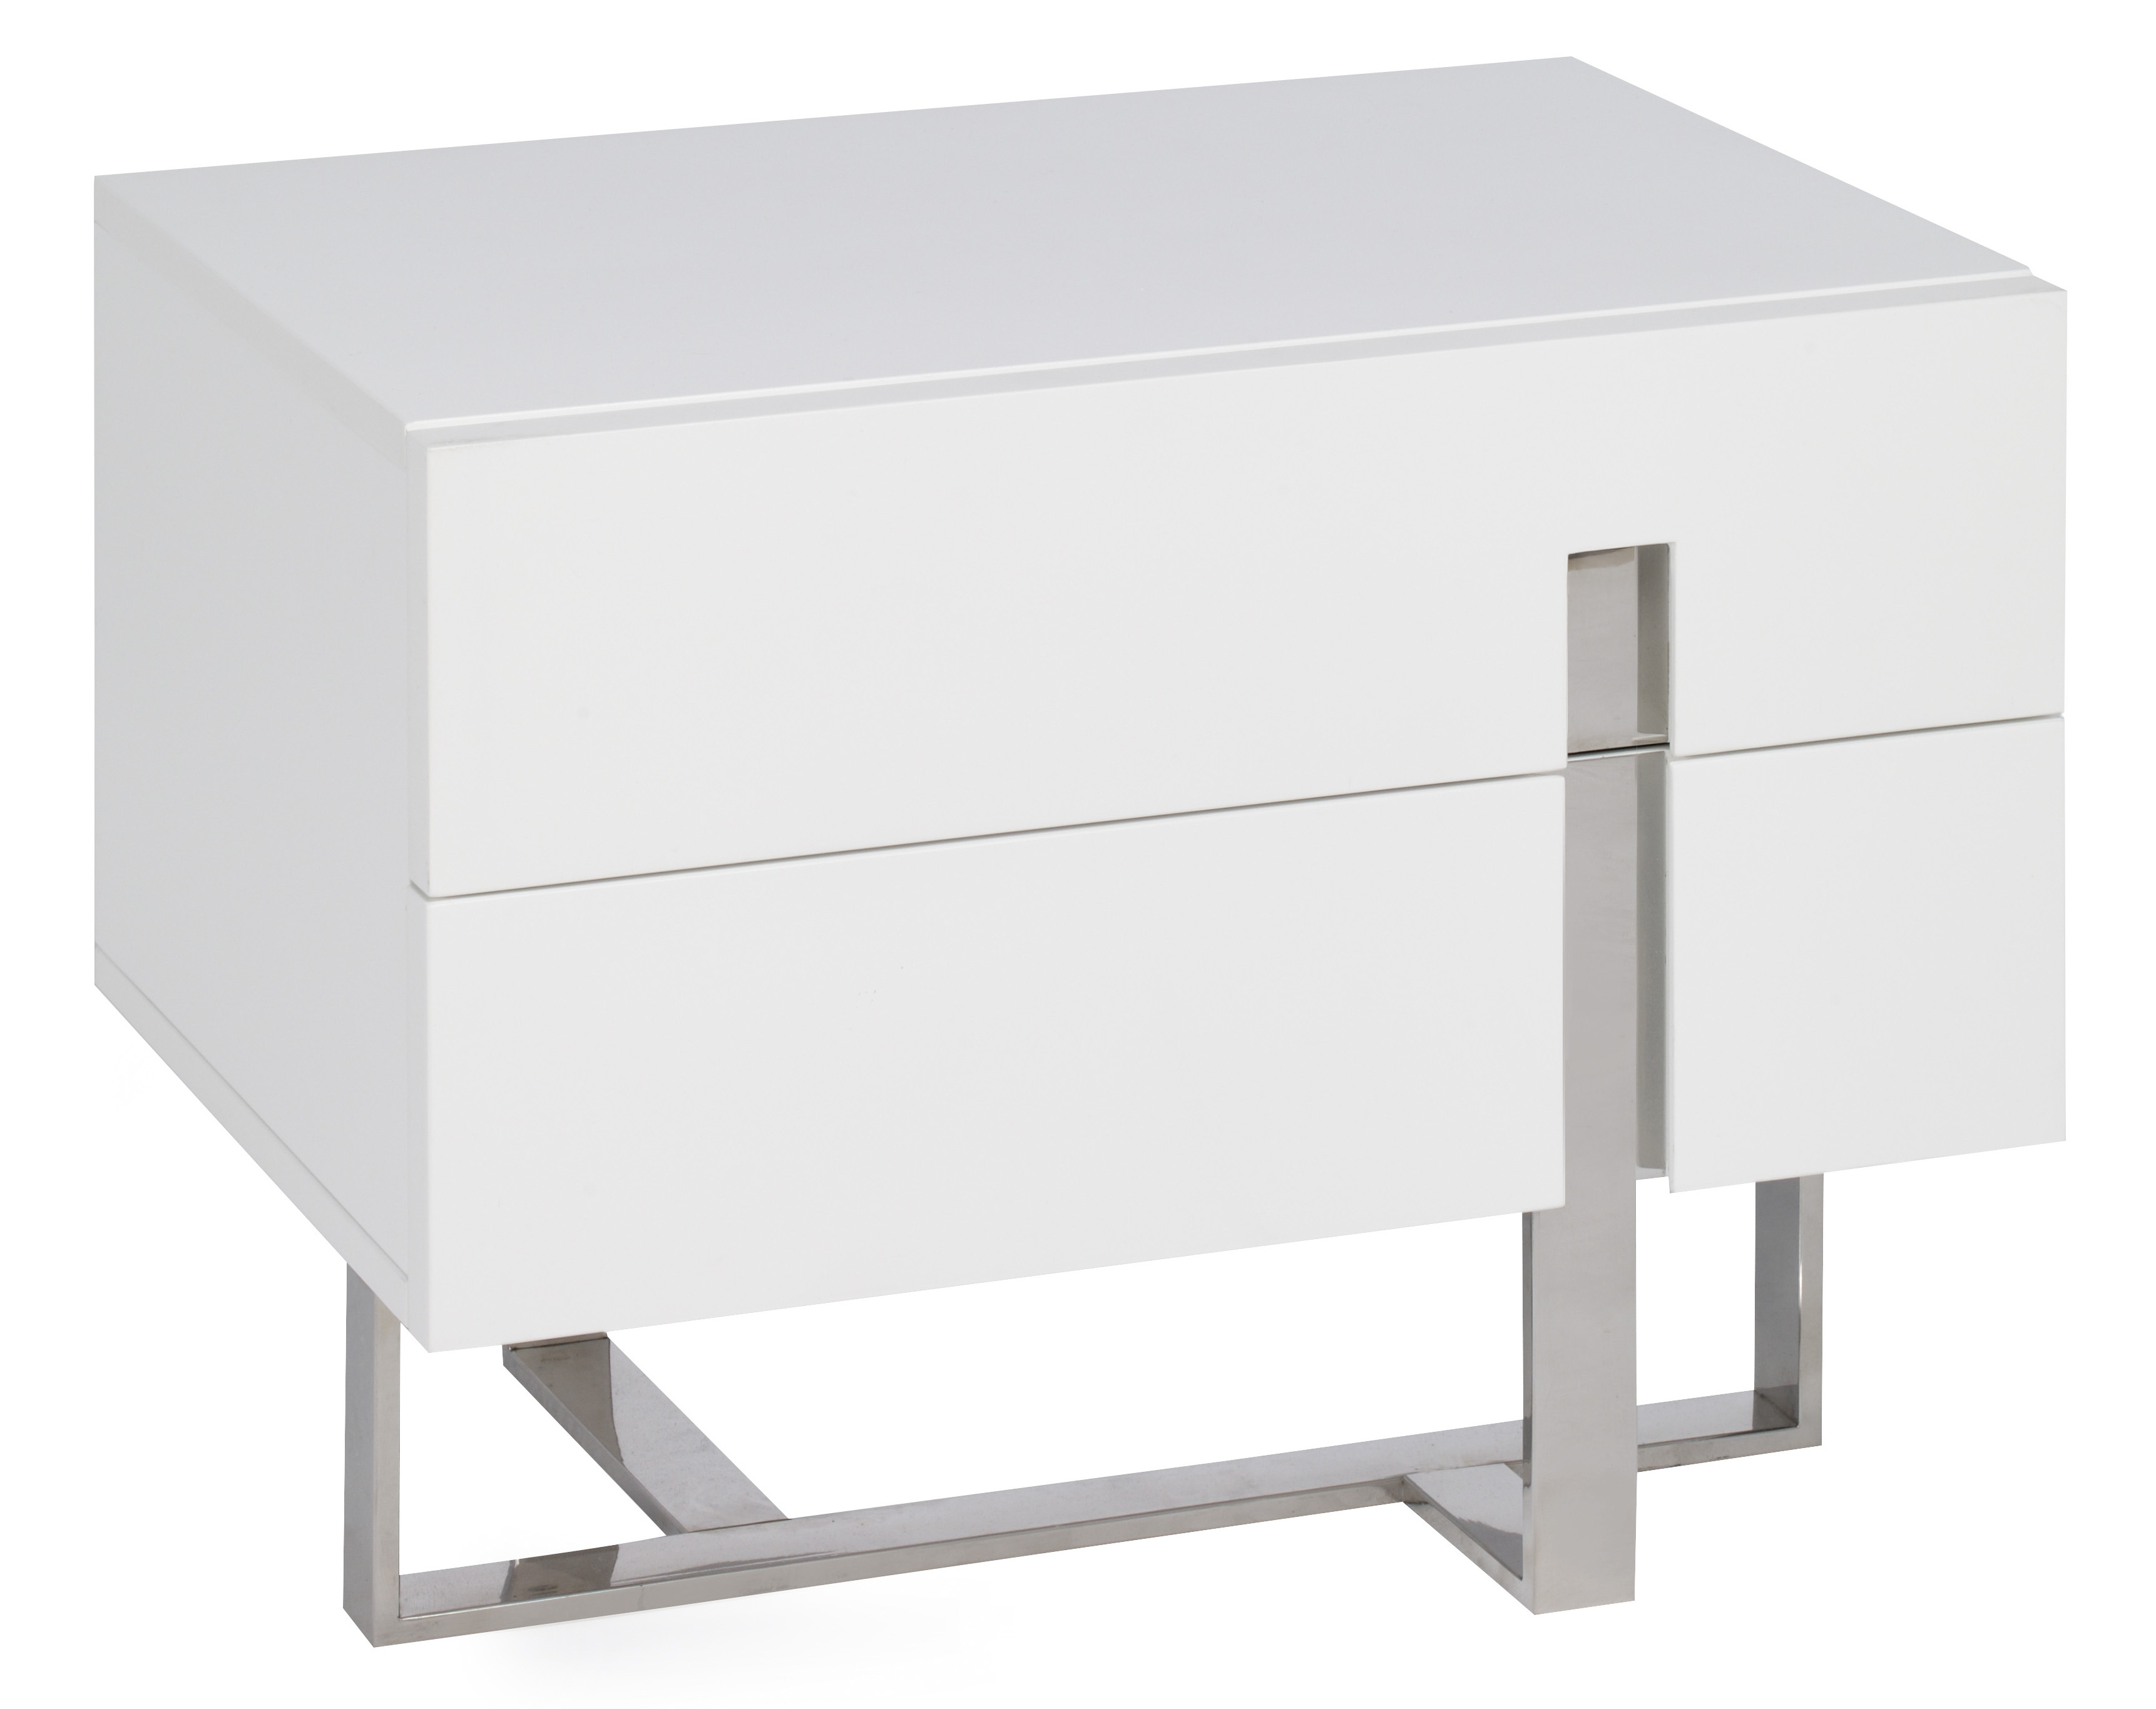 Table chevet blanche - Table de chevet blanche ...